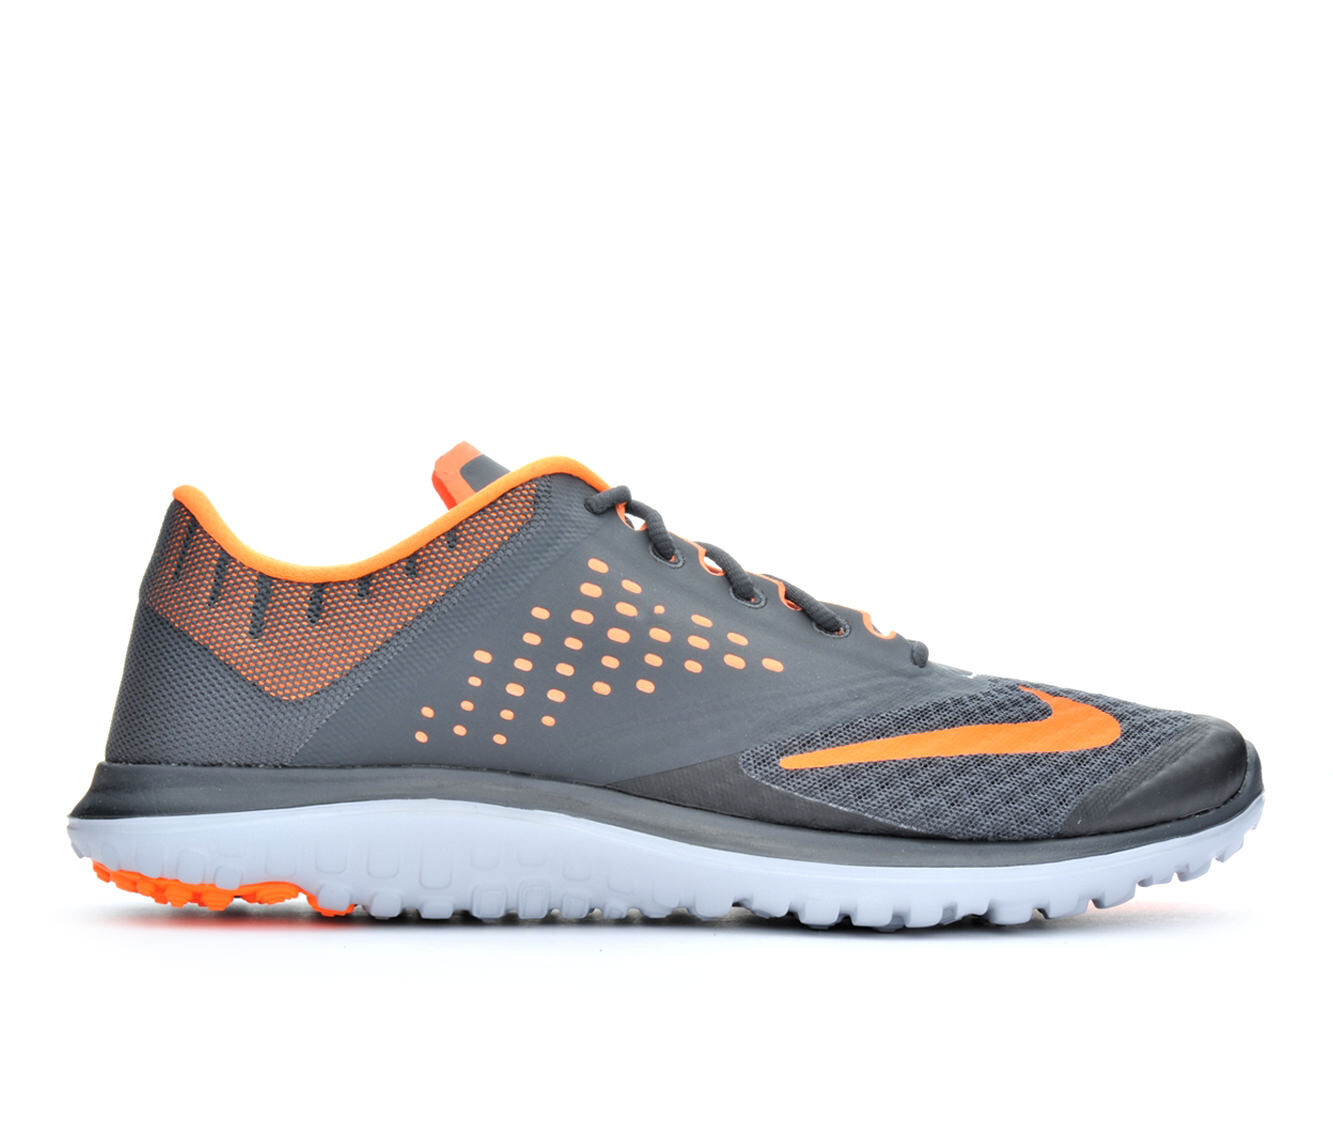 Nike Fs Lite Run Light Grey Orange Mens Shoes Welcome To Buy Our Products